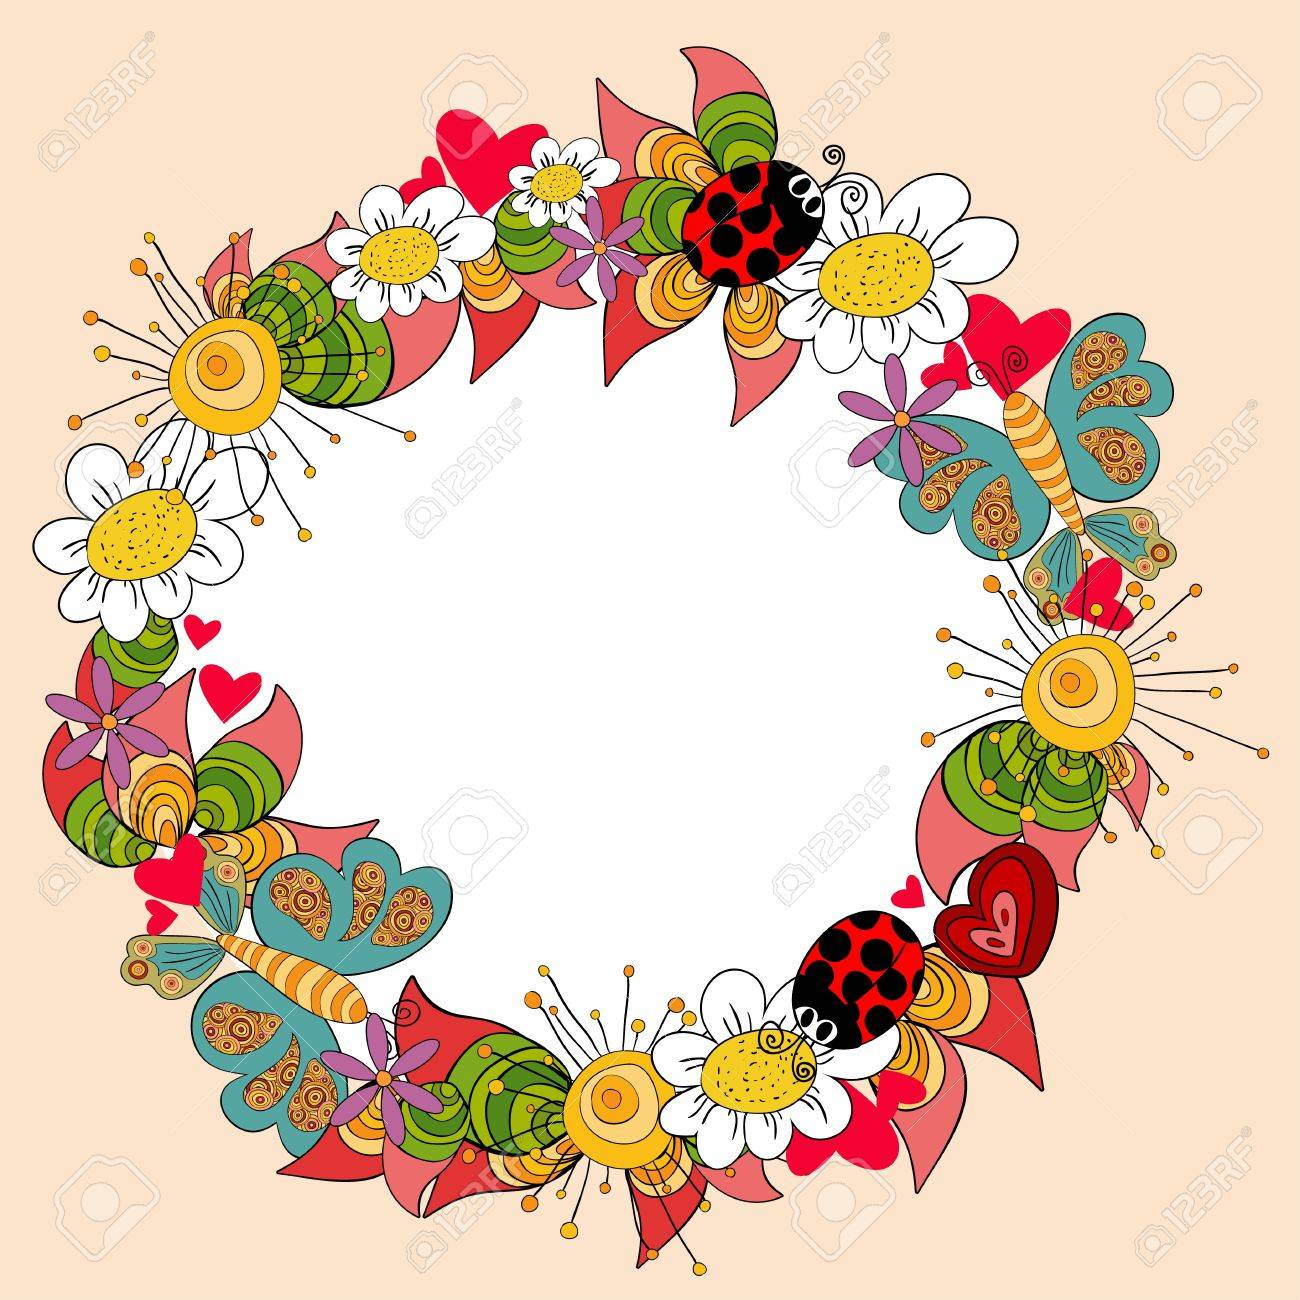 Vibrant colors spring composition with flowers, leaves, butterfly and beetle. Vector file layered for easy manipulation and custom coloring. Stock Vector - 17878323